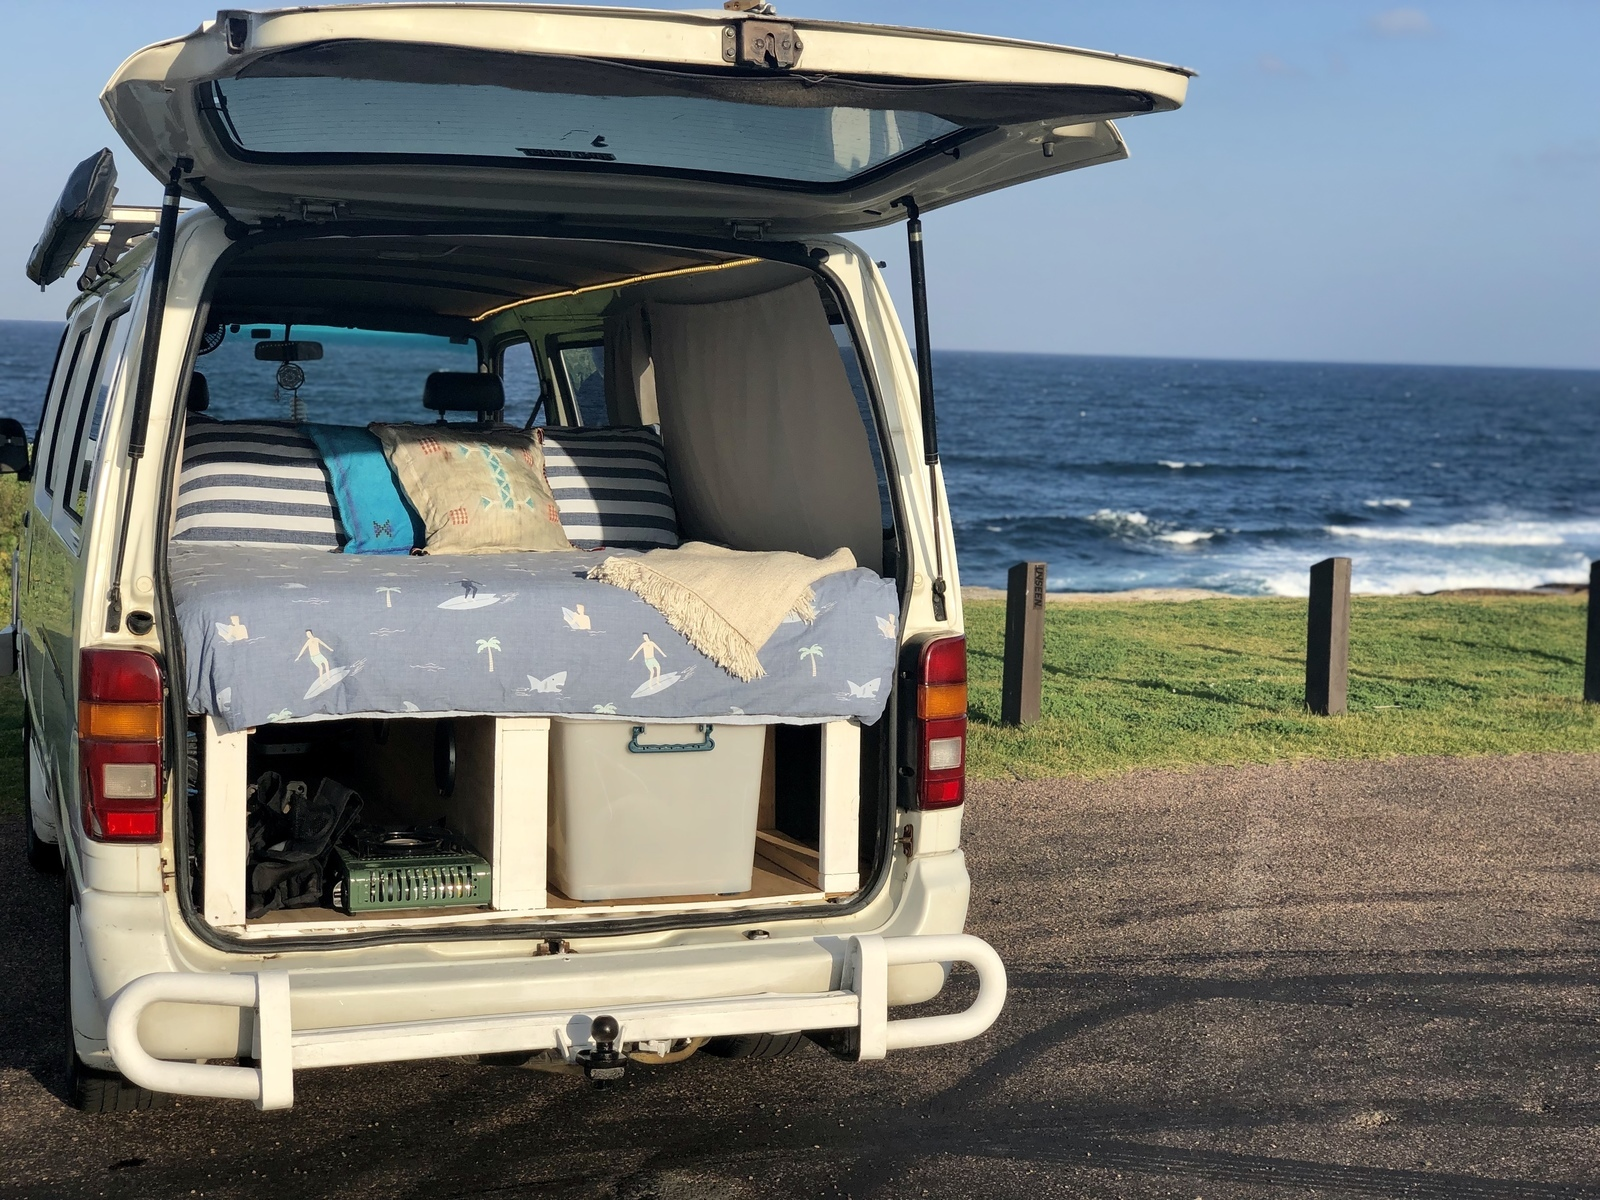 Campervan For Hire In Cronulla Nsw From 80 0 Shark Bait